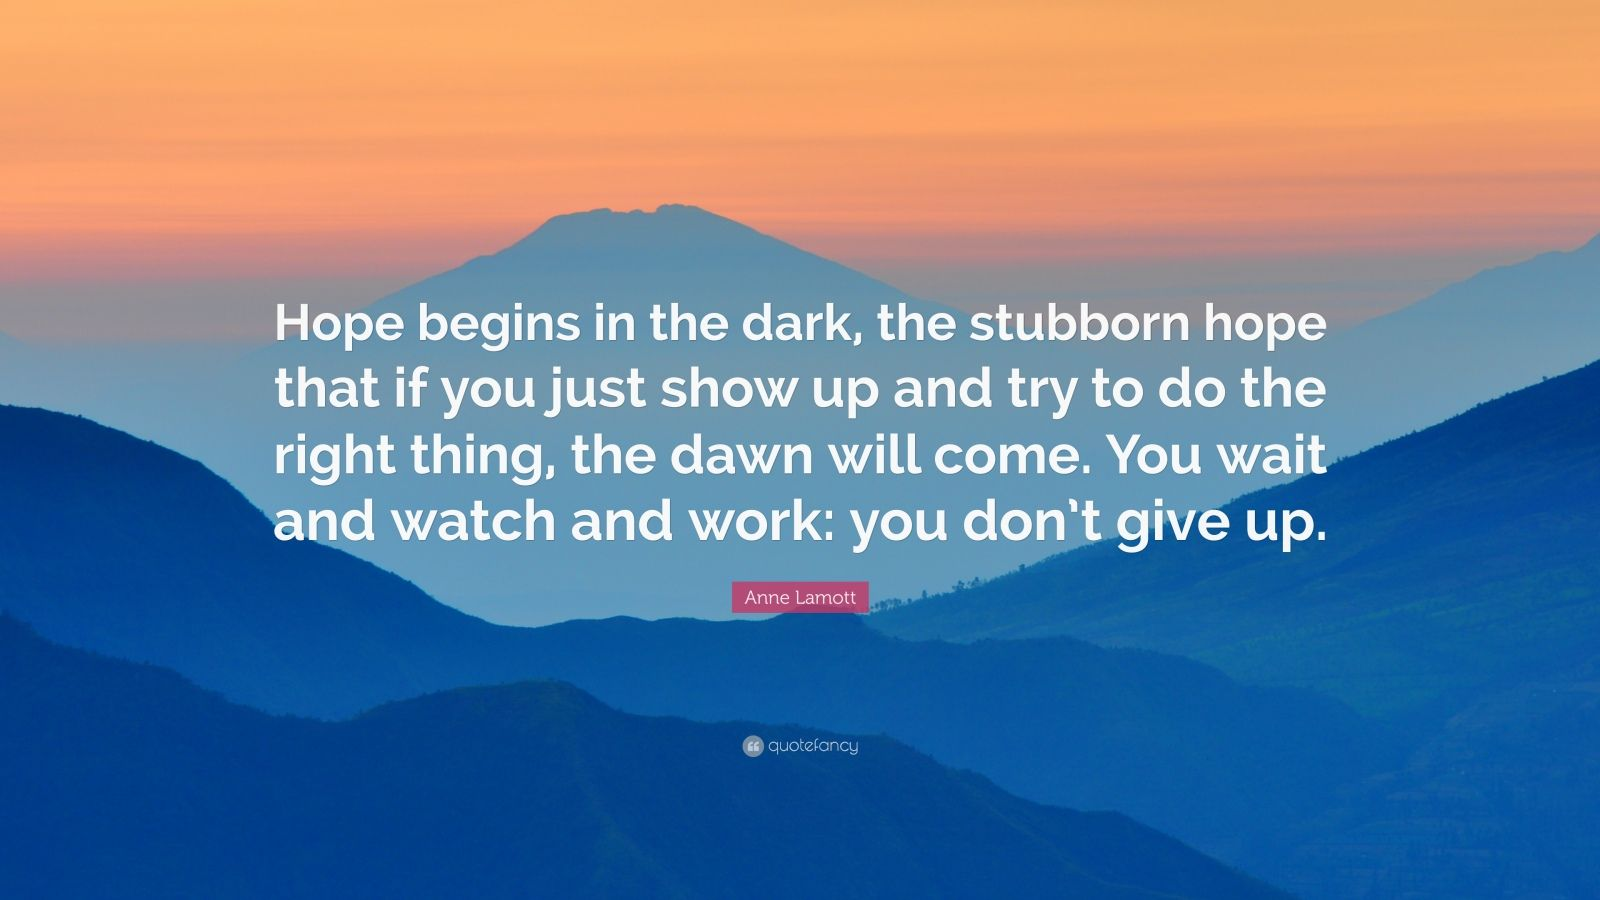 Life Success Quotes Hd Wallpapers Anne Lamott Quote Hope Begins In The Dark The Stubborn